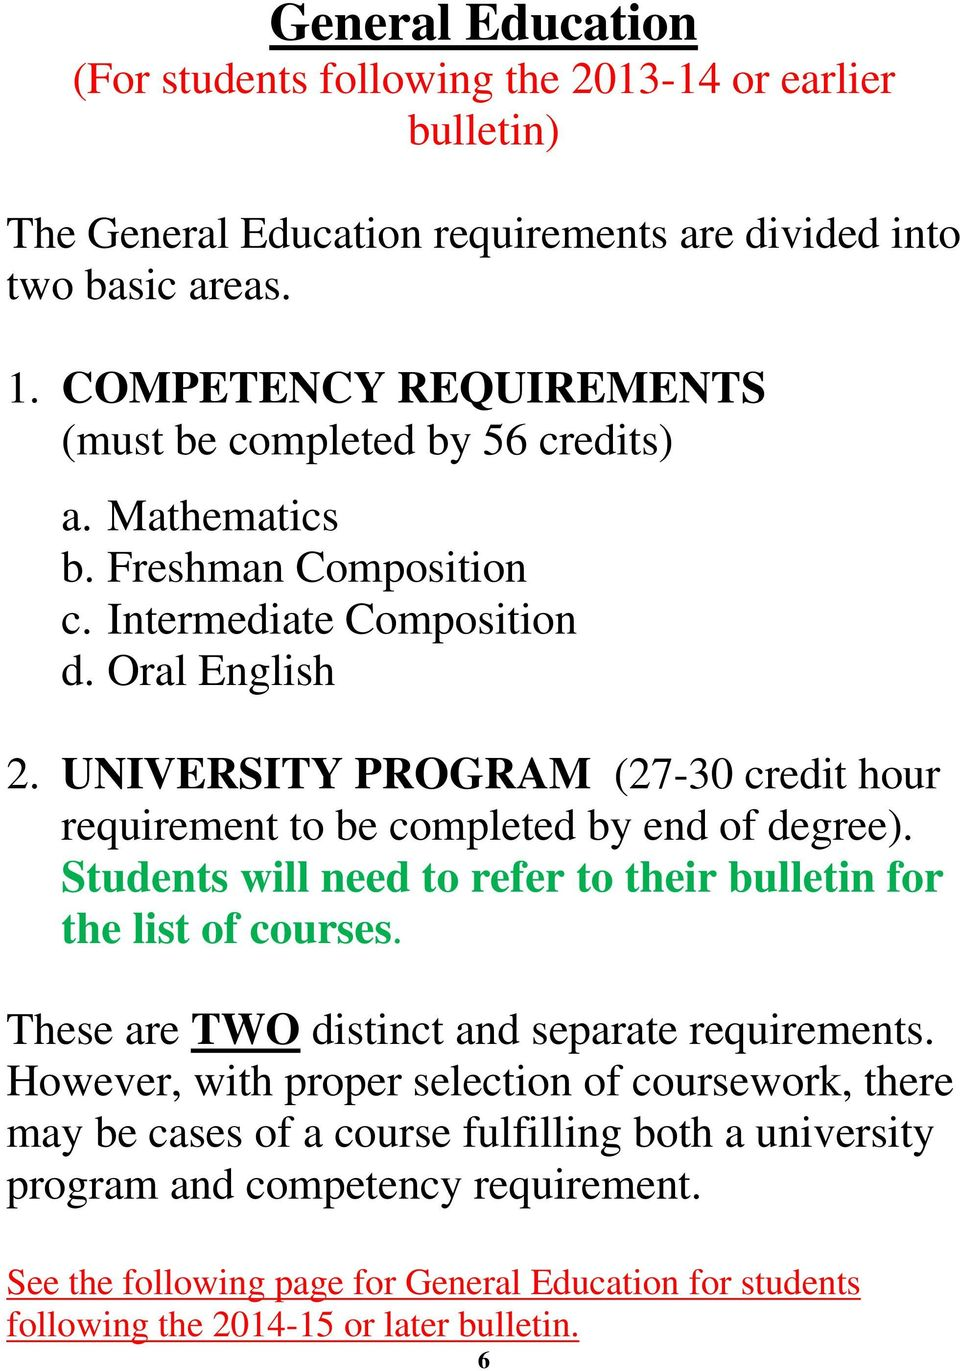 UNIVERSITY PROGRAM (27-30 credit hour requirement to be completed by end of degree). Students will need to refer to their bulletin for the list of courses.